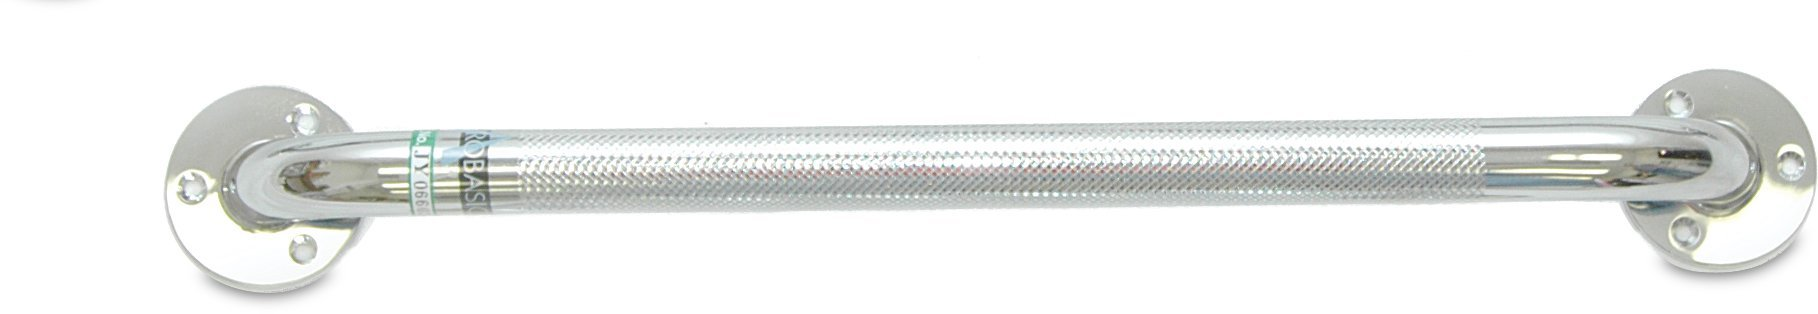 "Chrome Knurled Grab Bar, 16"", 250lb Weight Capacity - US MED REHAB"